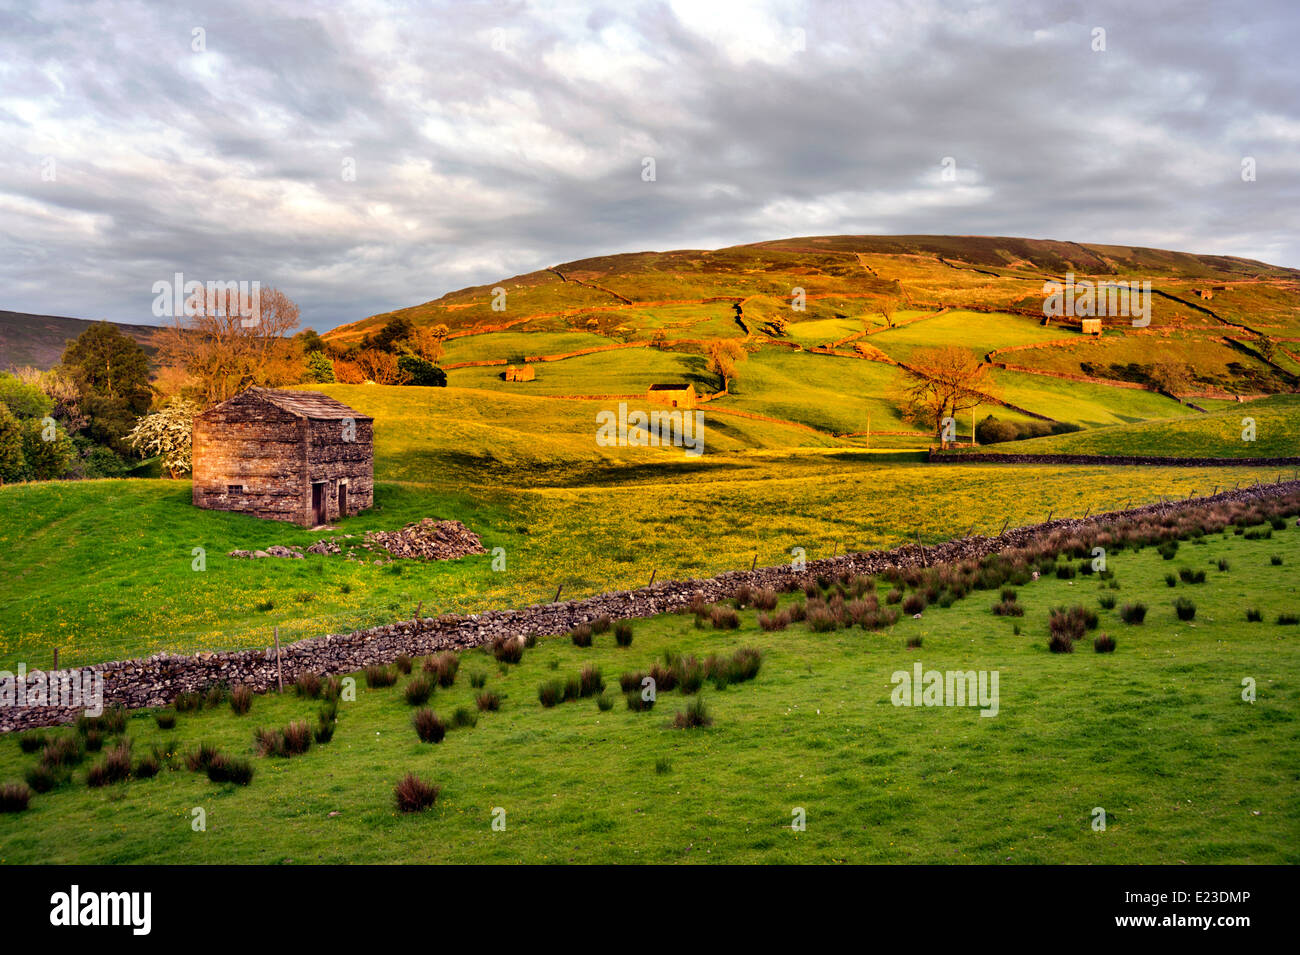 Traditional barn in The Yorkshire Dales hamlet of Keld, at the junction of the Pennine Way and Coast to Coast trails, - Stock Image